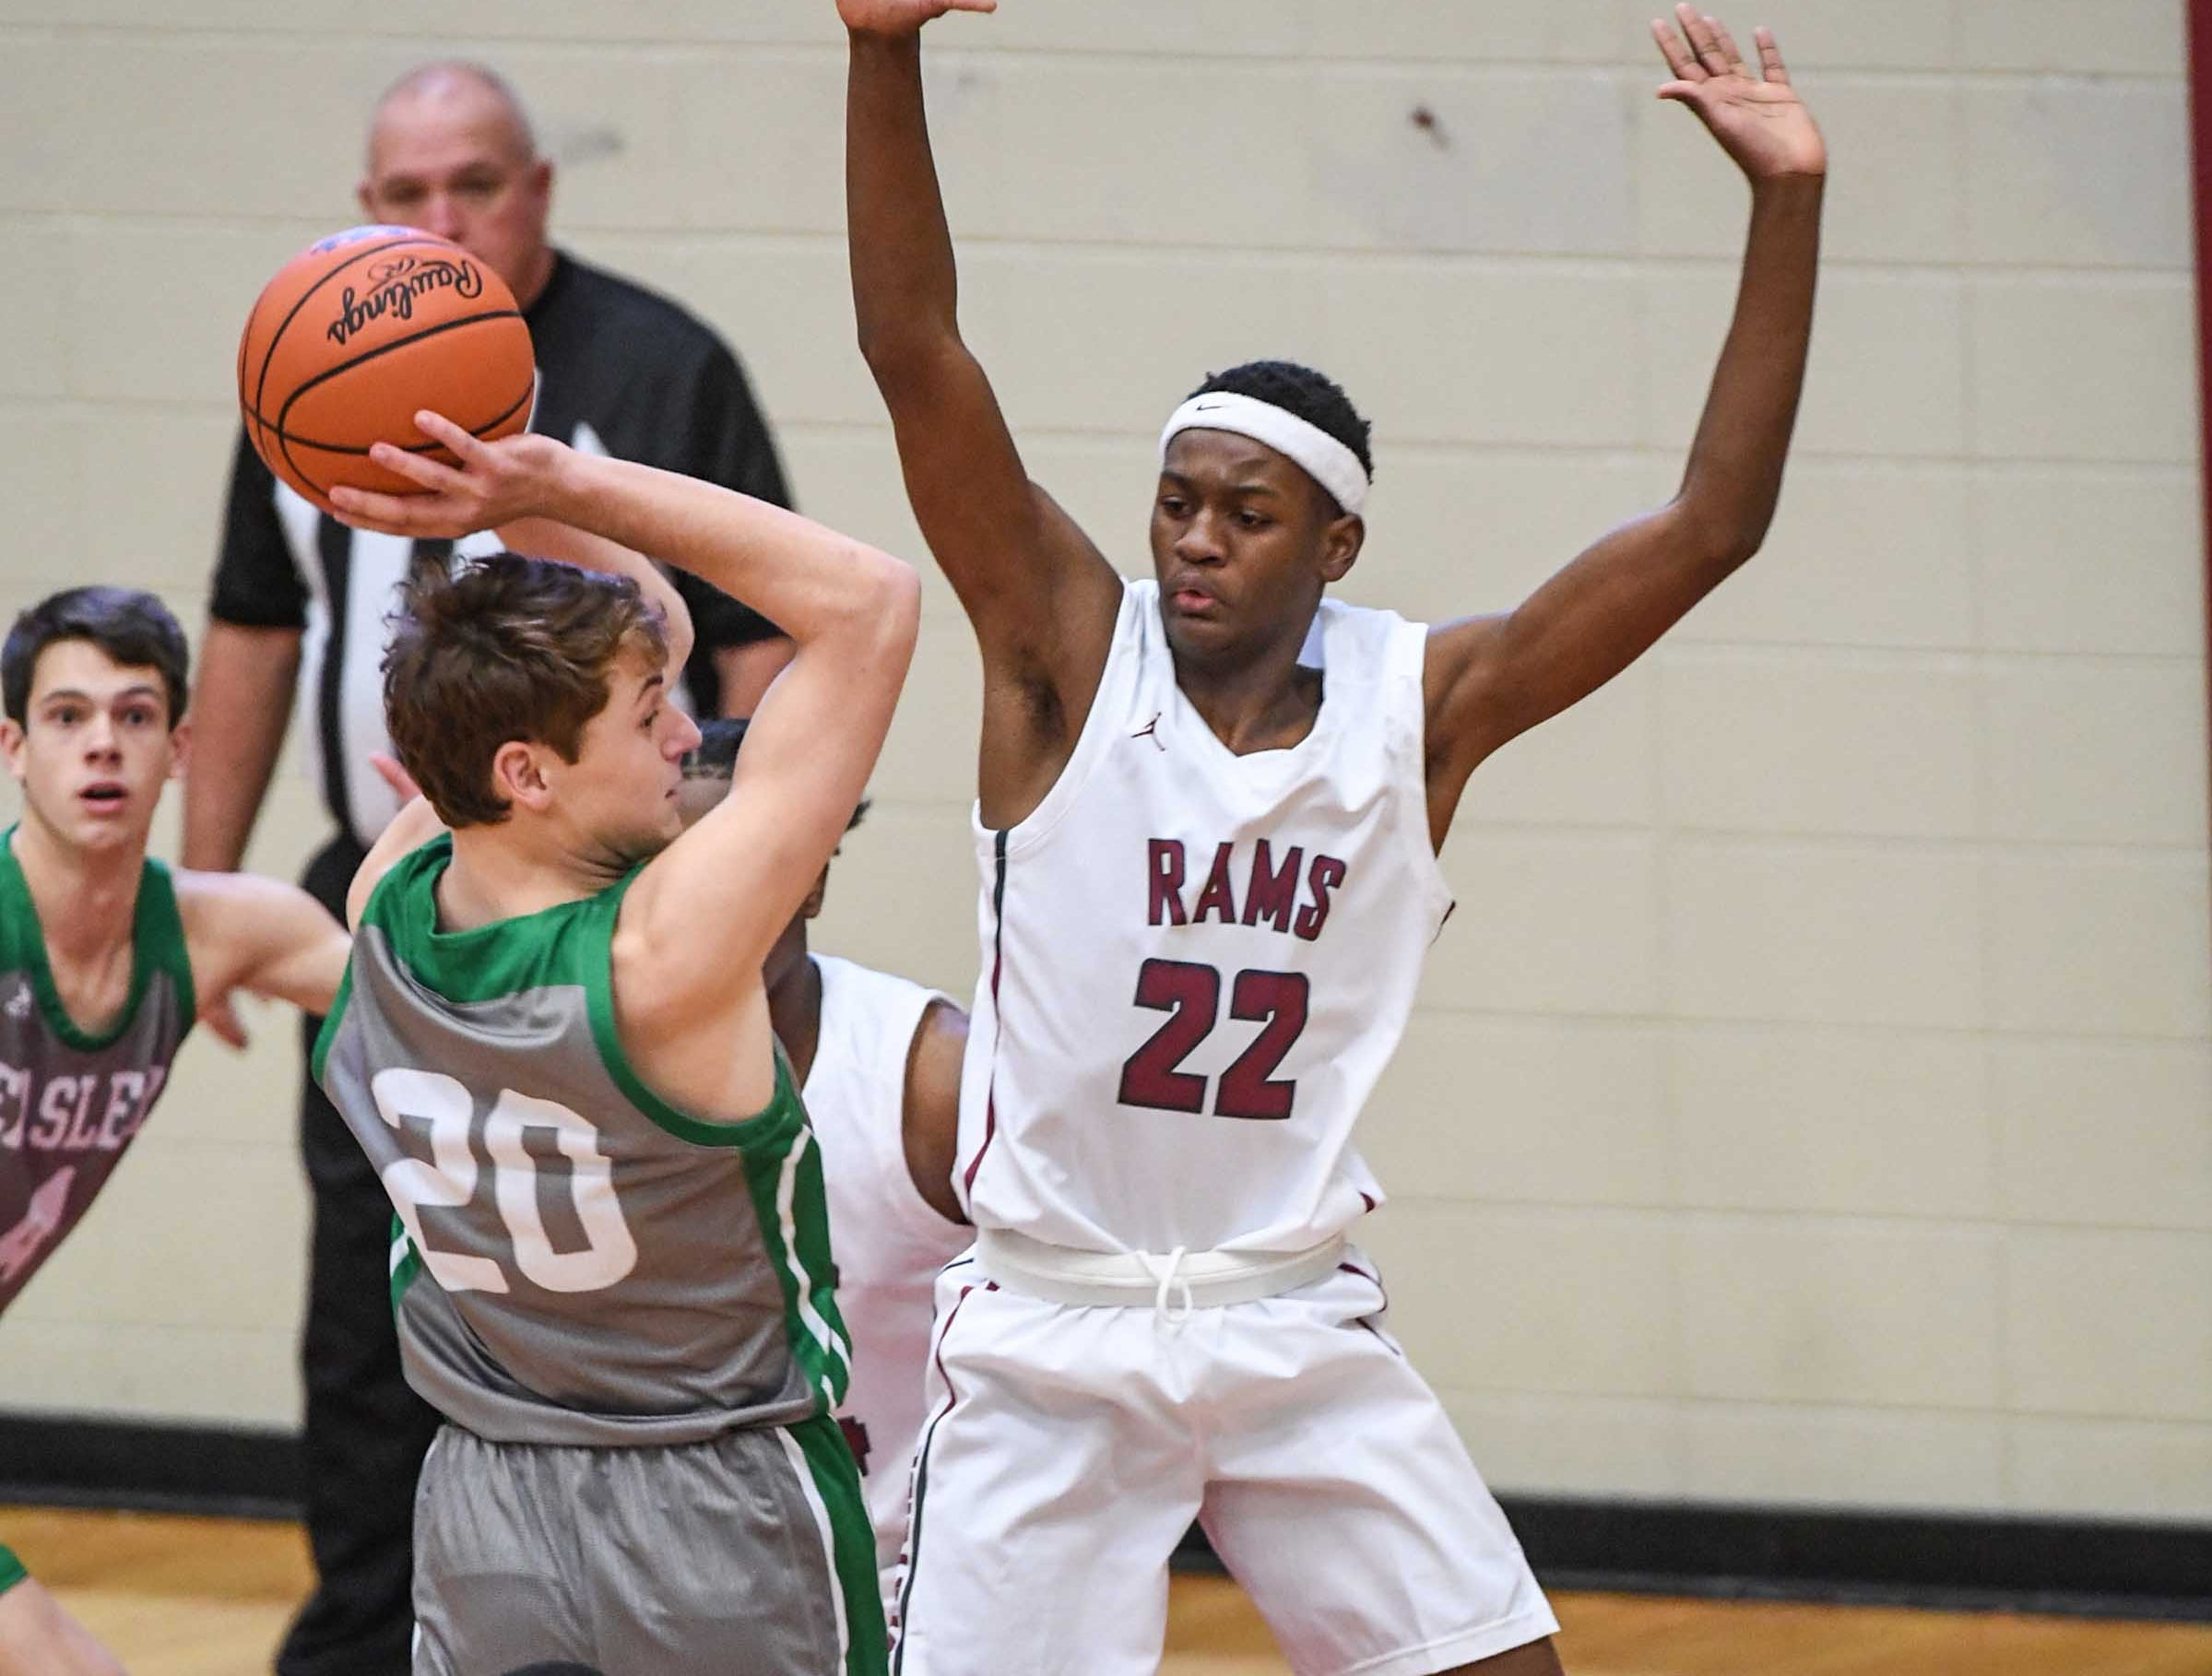 Easley senior Matt Nunnery(20) looks to pass around Westside sophomore Xavier Thornton(22) during the first quarter at Westside High School in Anderson on Friday.